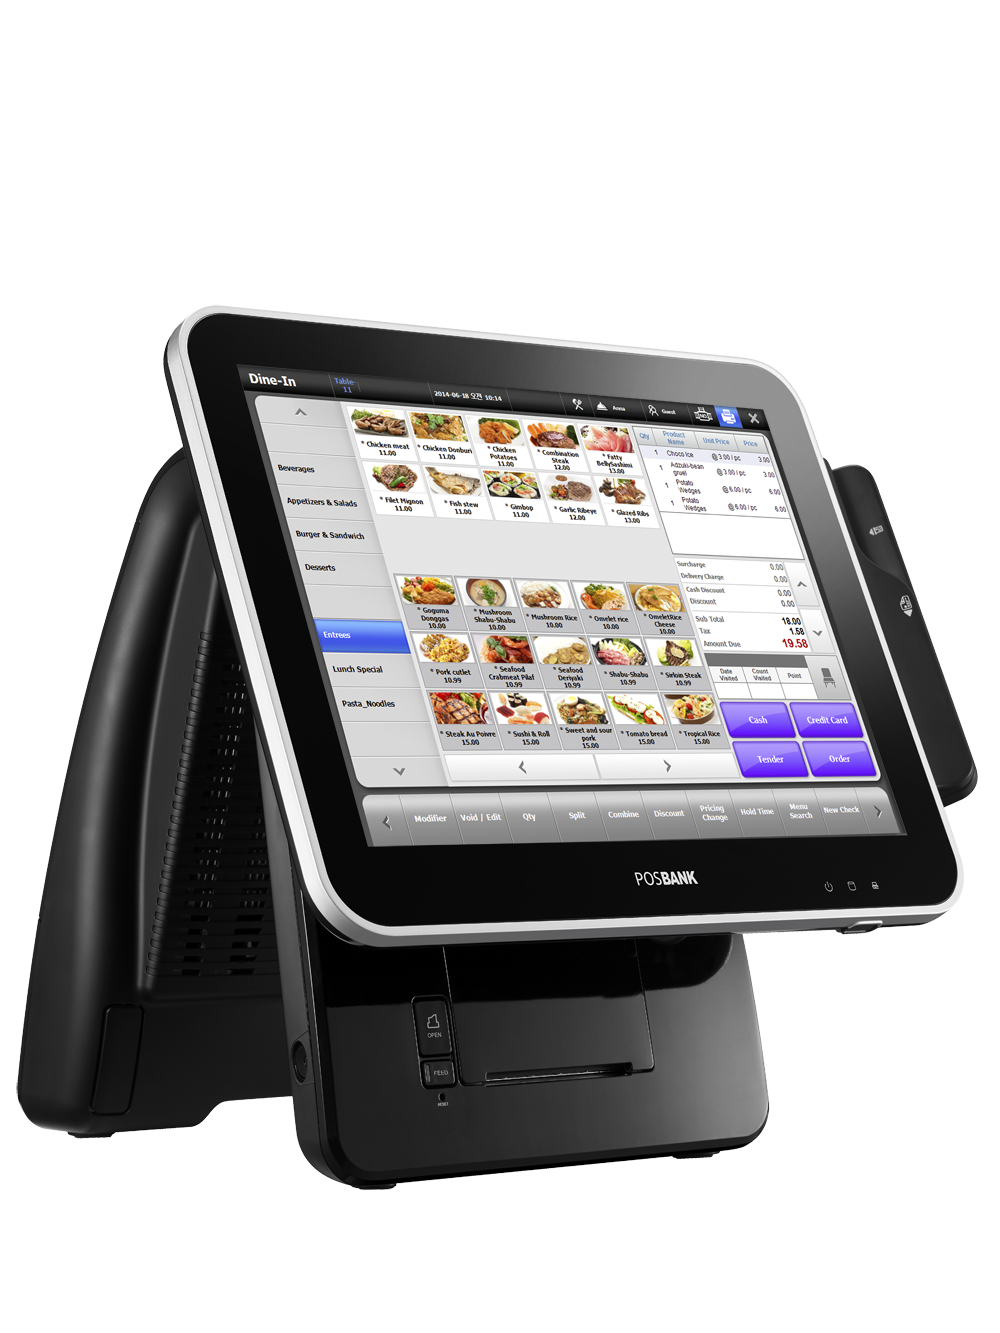 Posbank Launches High End Stylish All In One Pos System